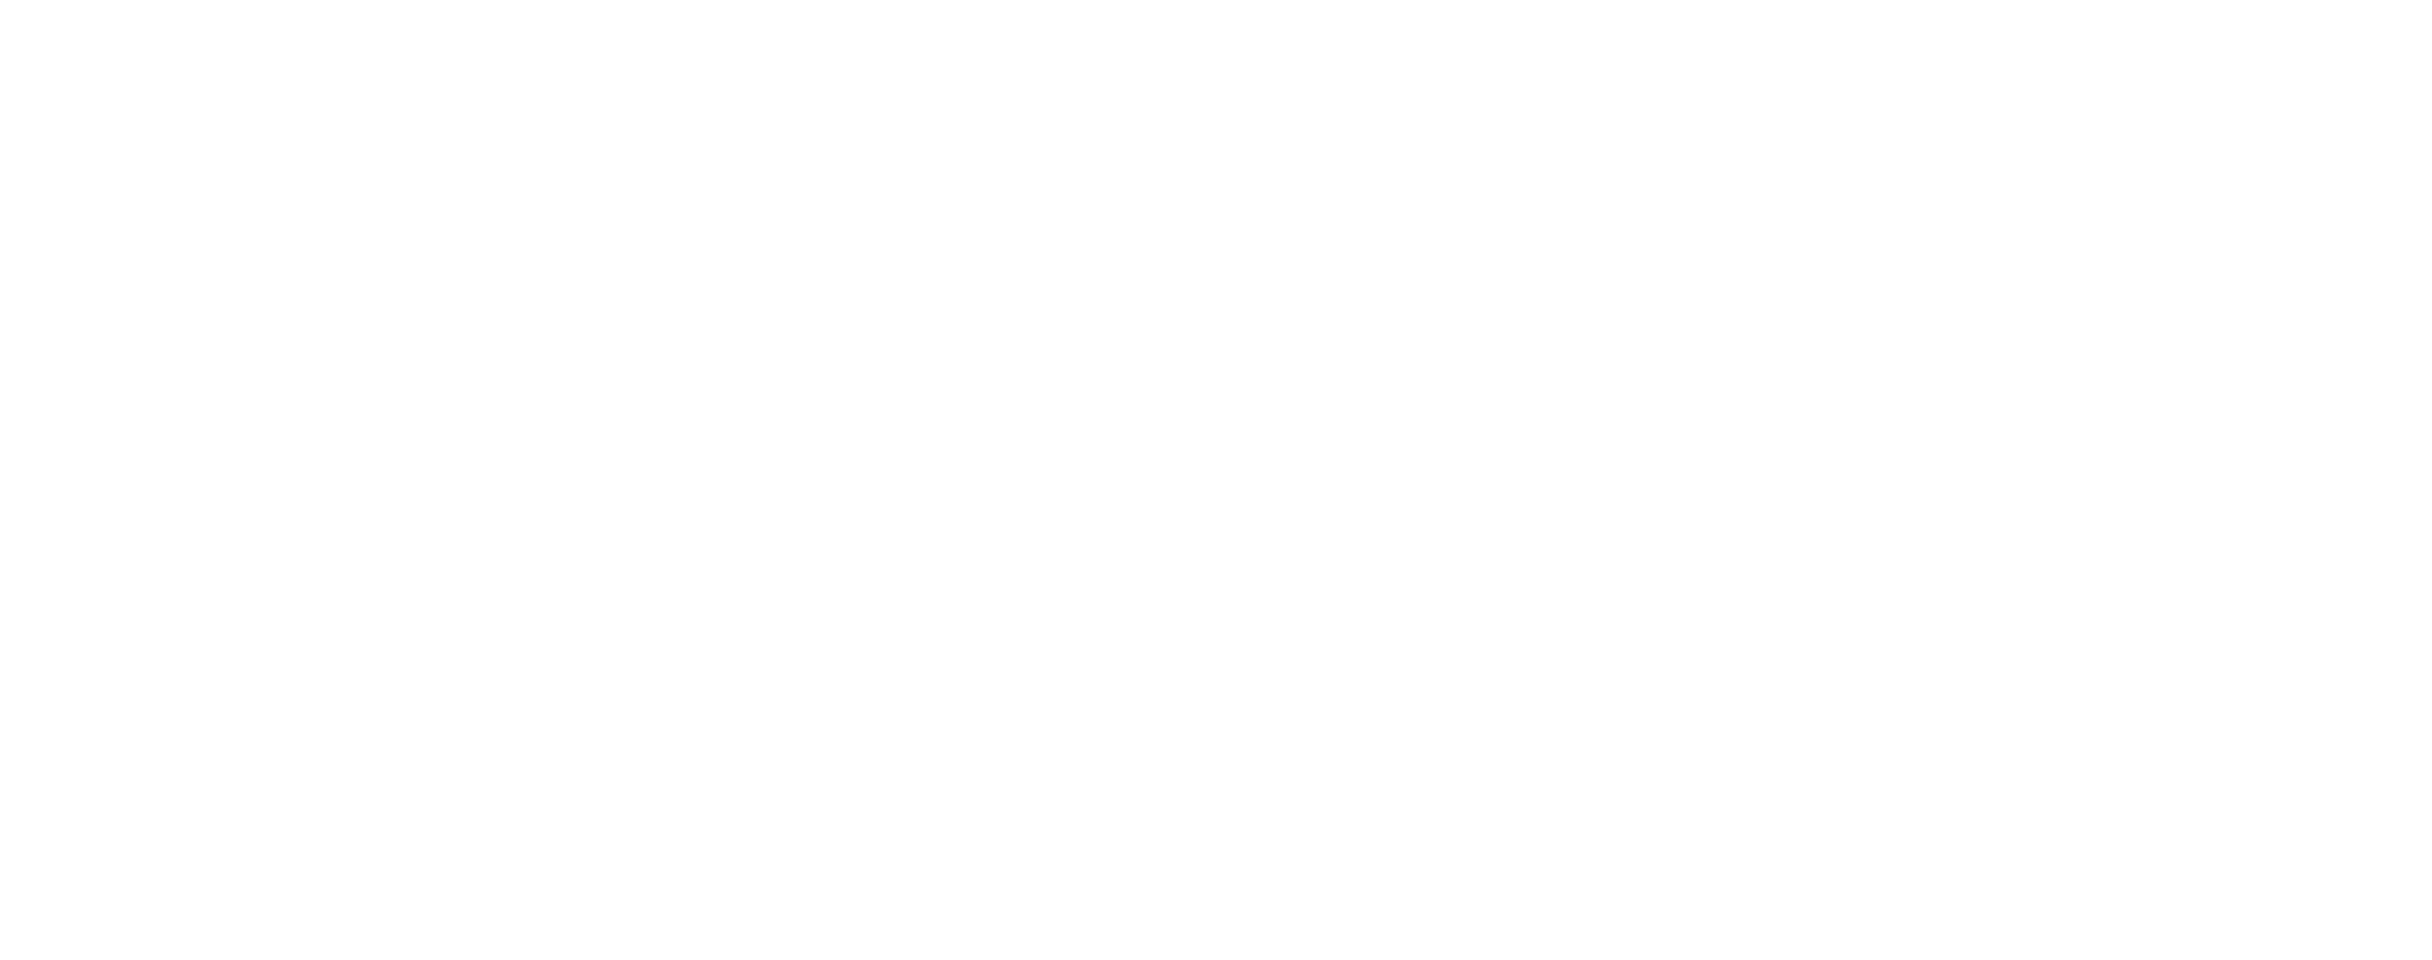 FullCycle wordmark in white